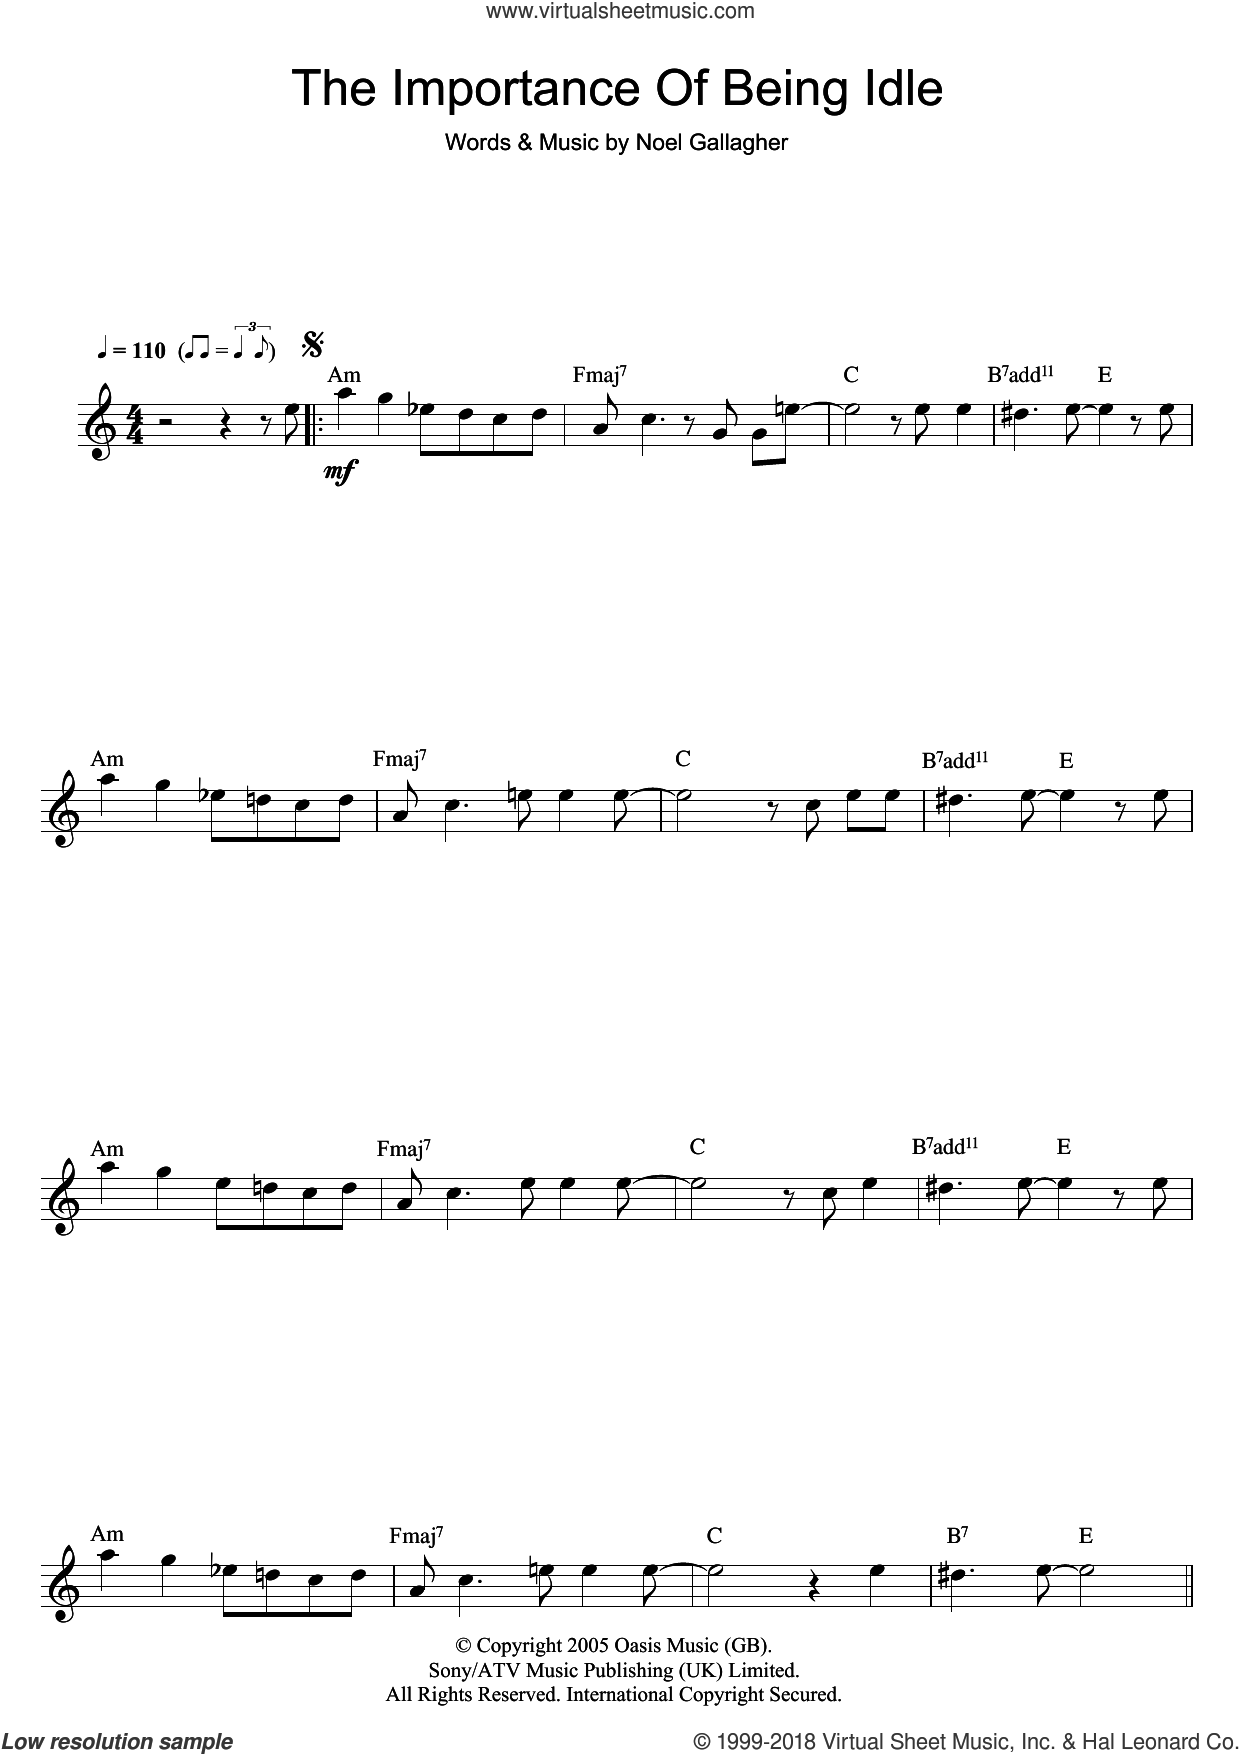 The Importance Of Being Idle sheet music for flute solo by Oasis and Noel Gallagher, intermediate skill level